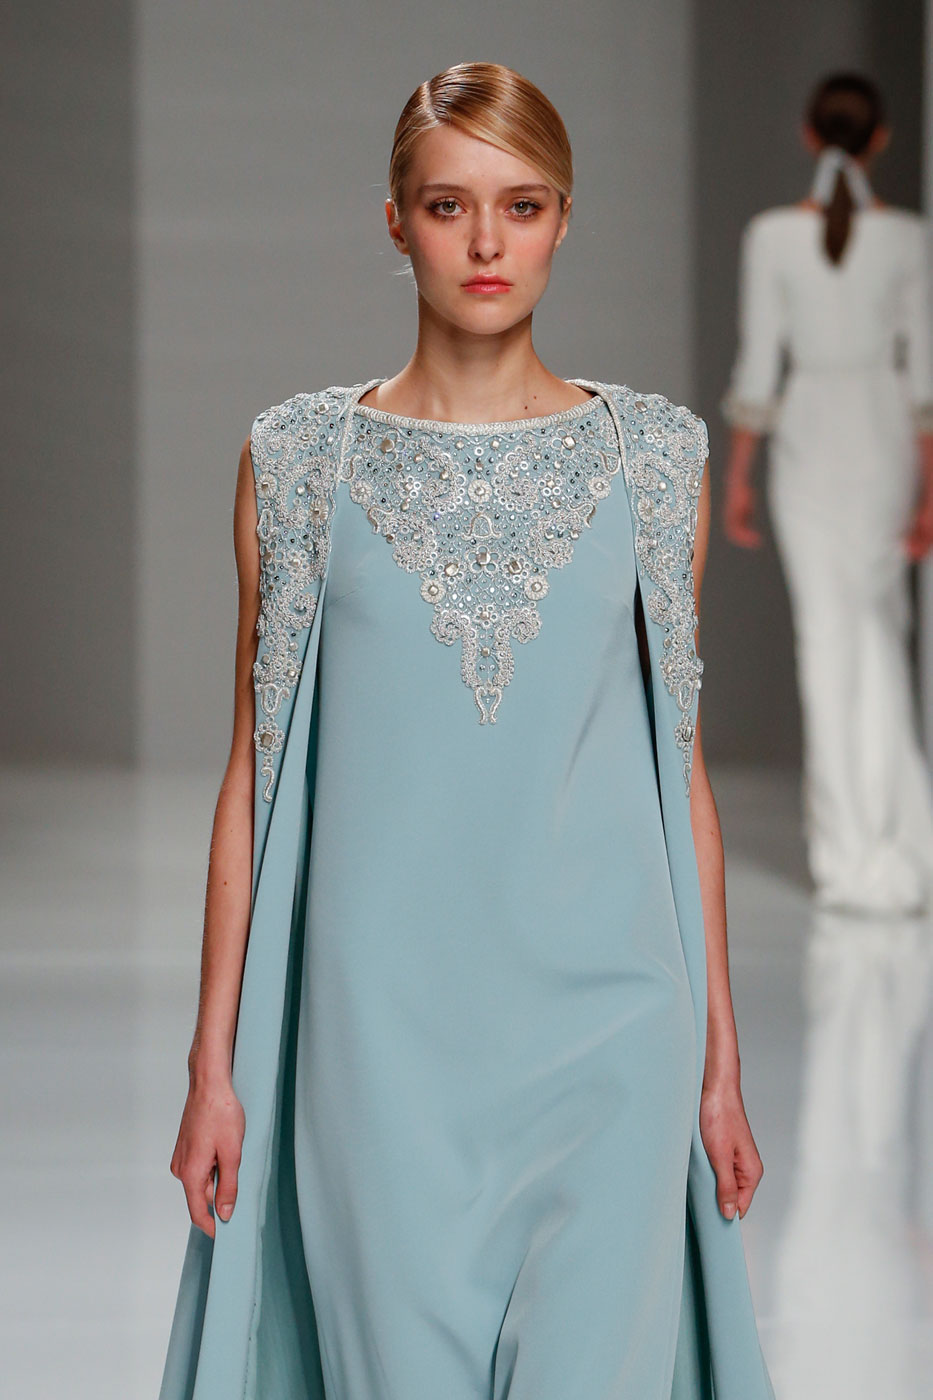 Georges-Hobeika-fashion-runway-show-haute-couture-paris-spring-2015-the-impression-38